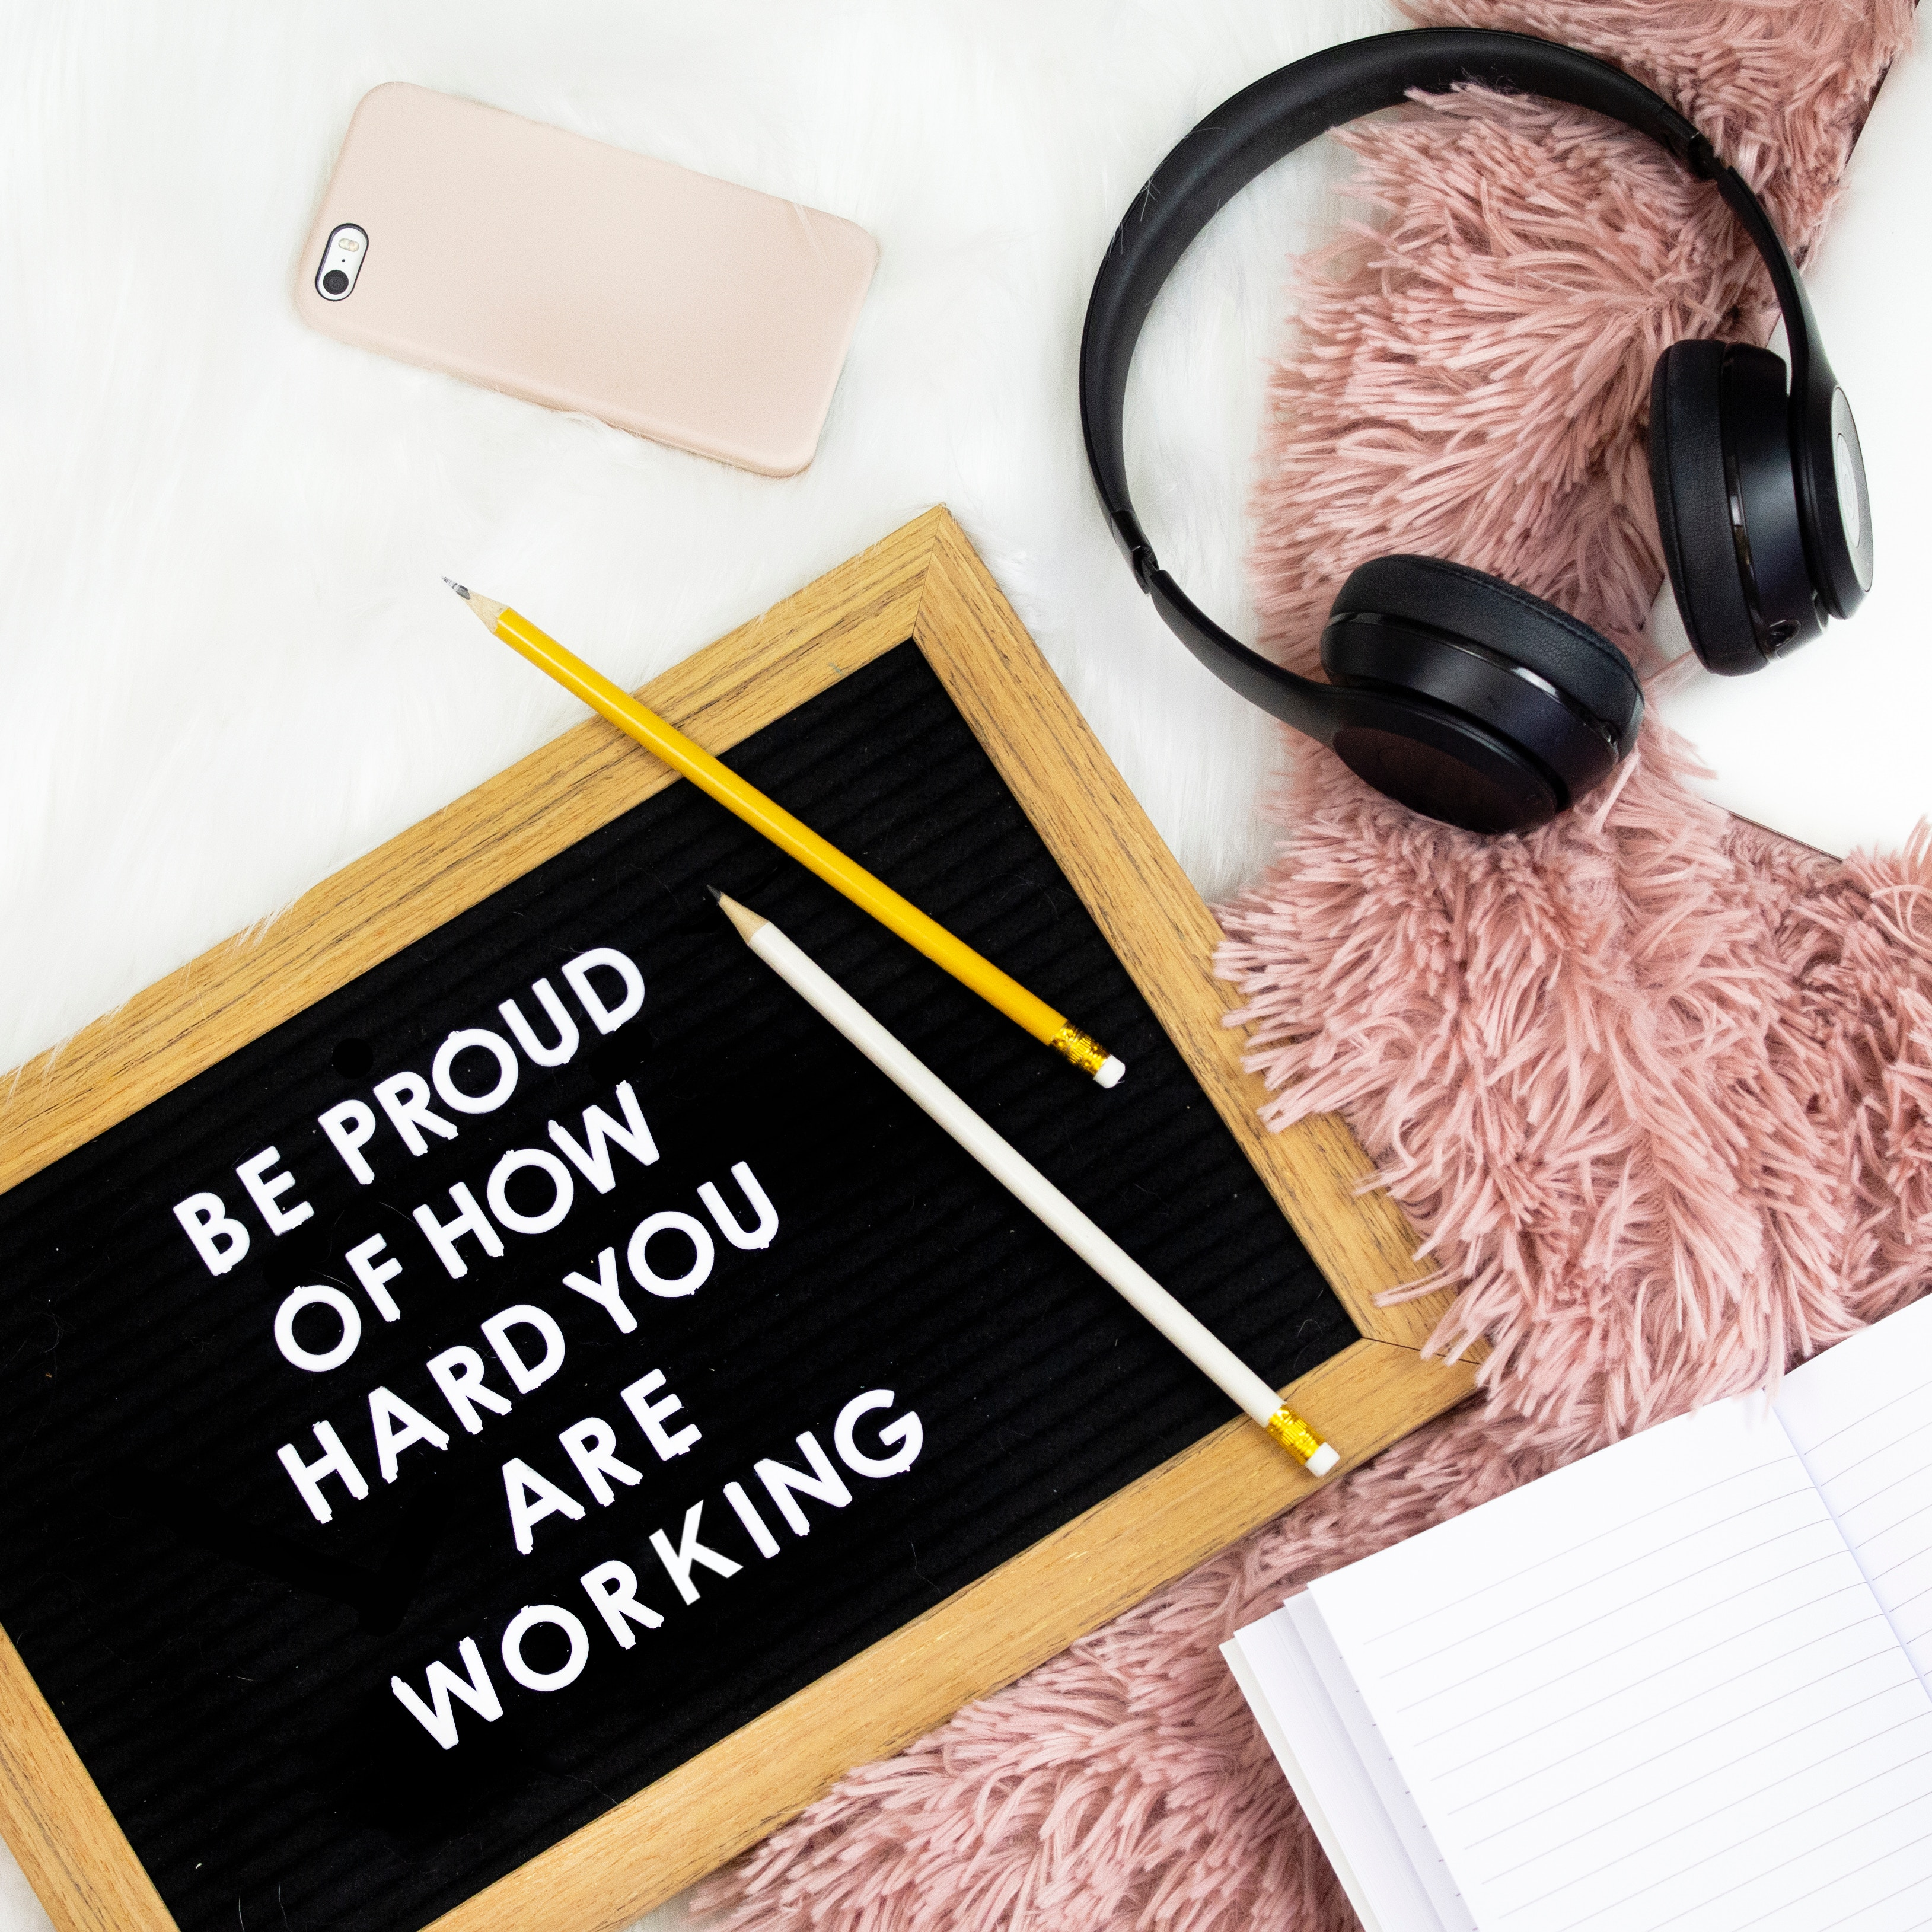 Be proud of hard work sign